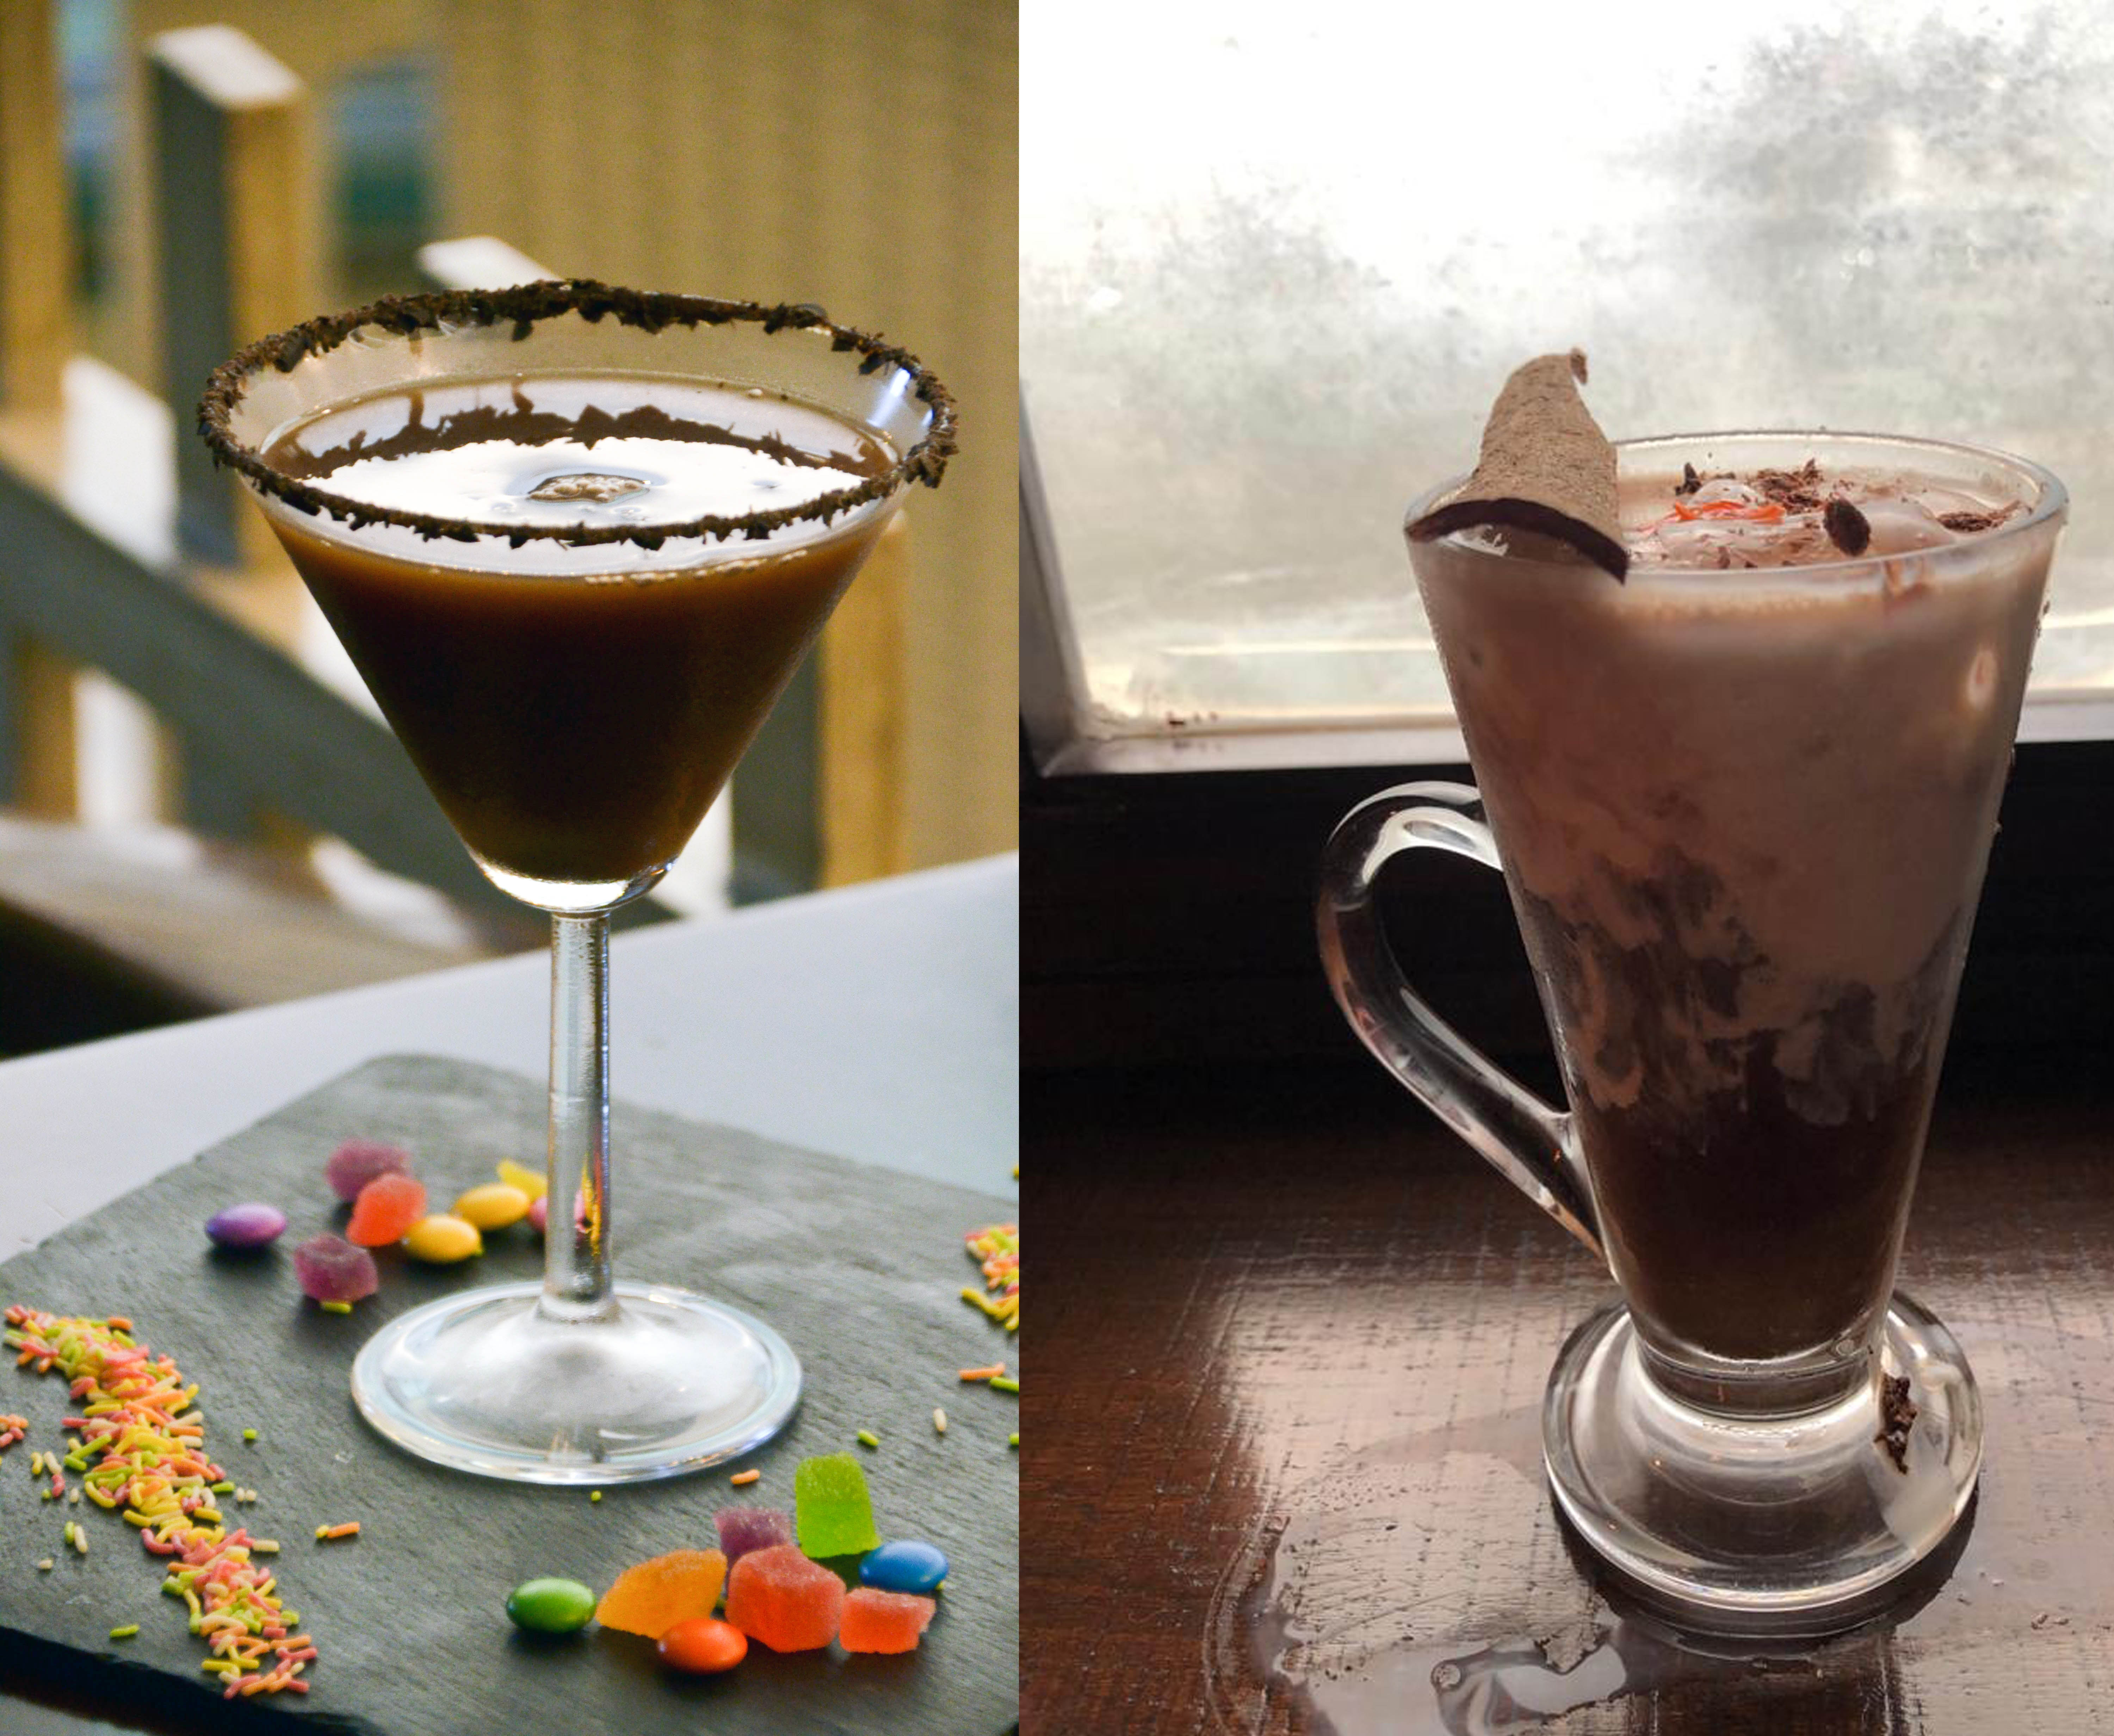 RELISH THE AMAZING TASTE OF THESE CHOCOLATE COCKTAILS